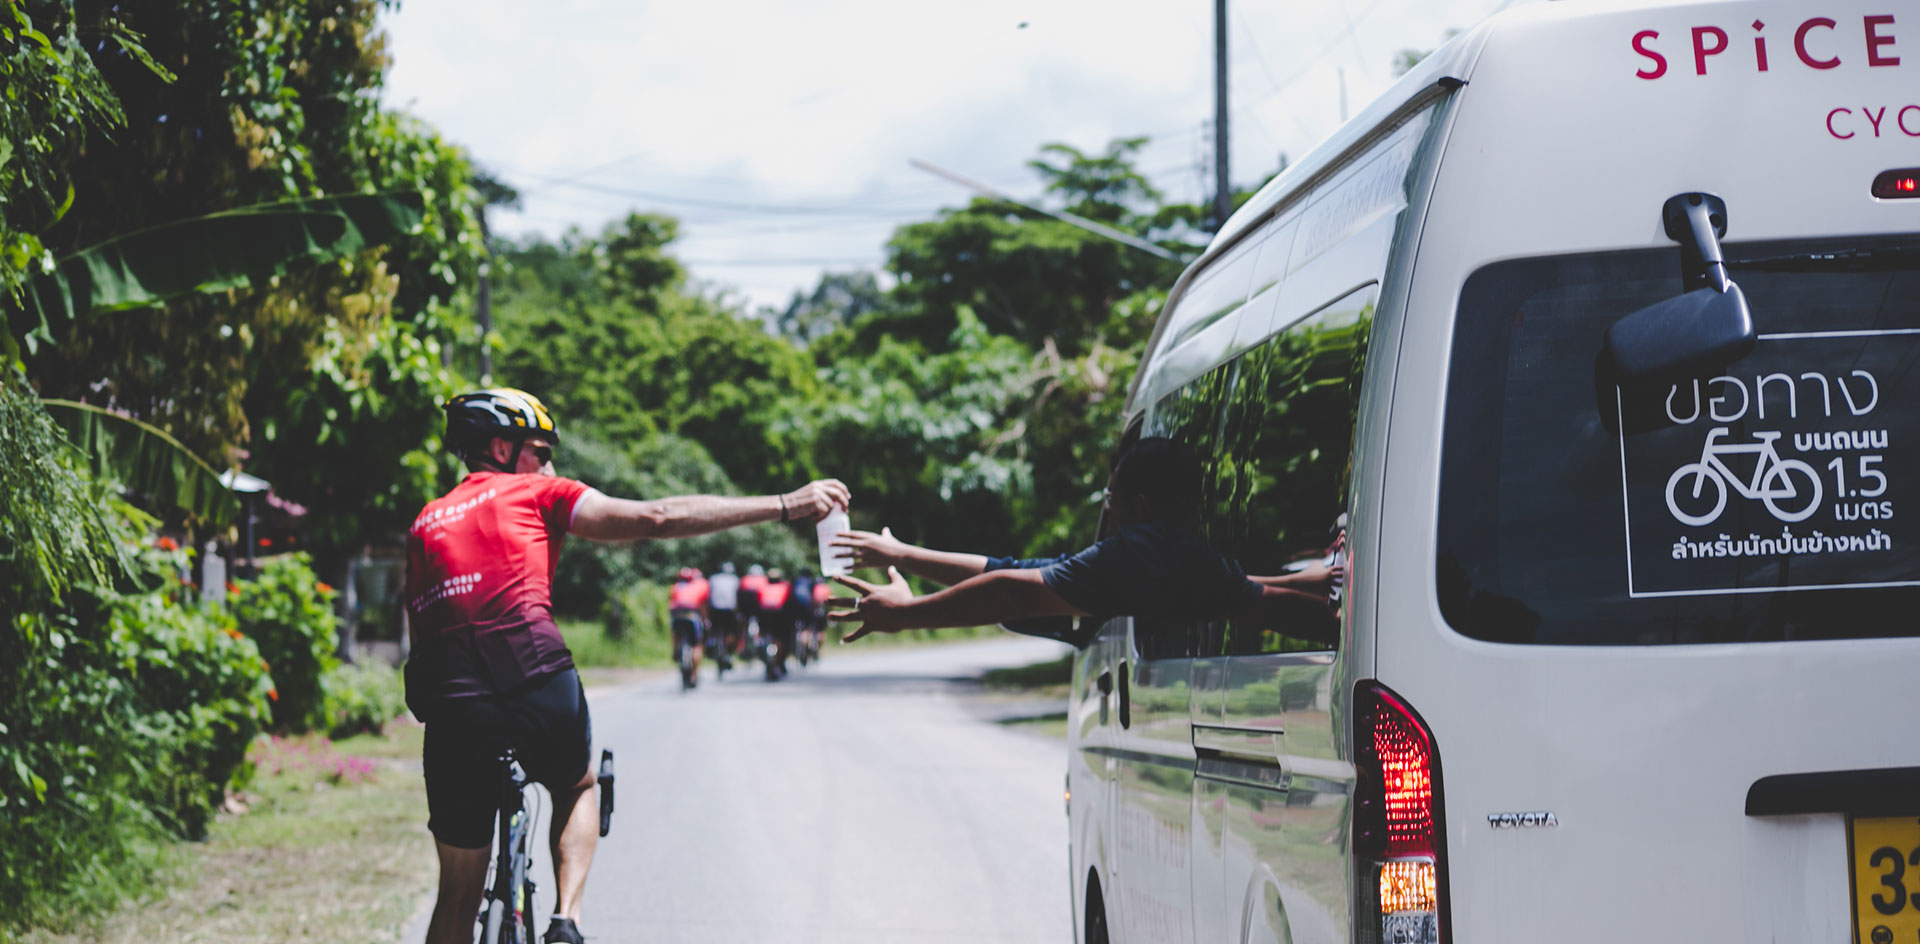 Cycling tour rider getting a water bottle from the support van